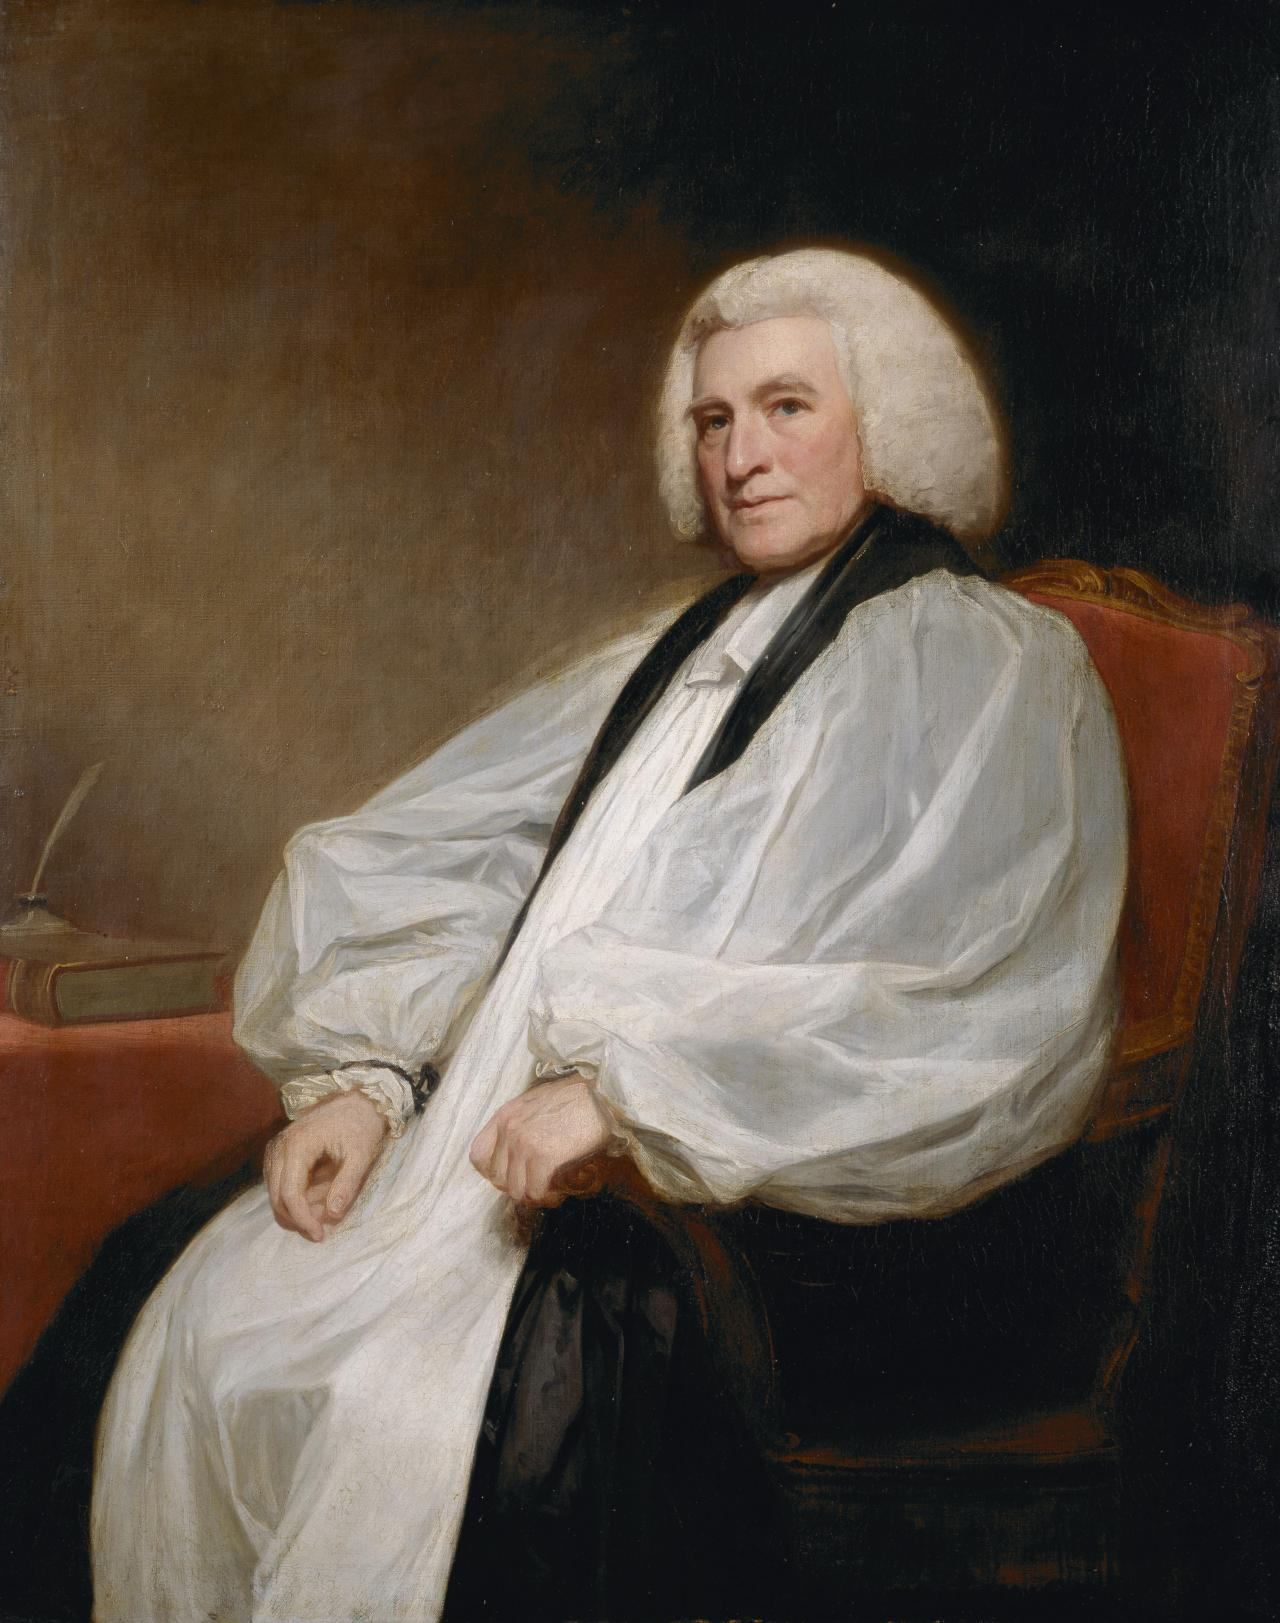 Edmund Law, Bishop of Carlisle